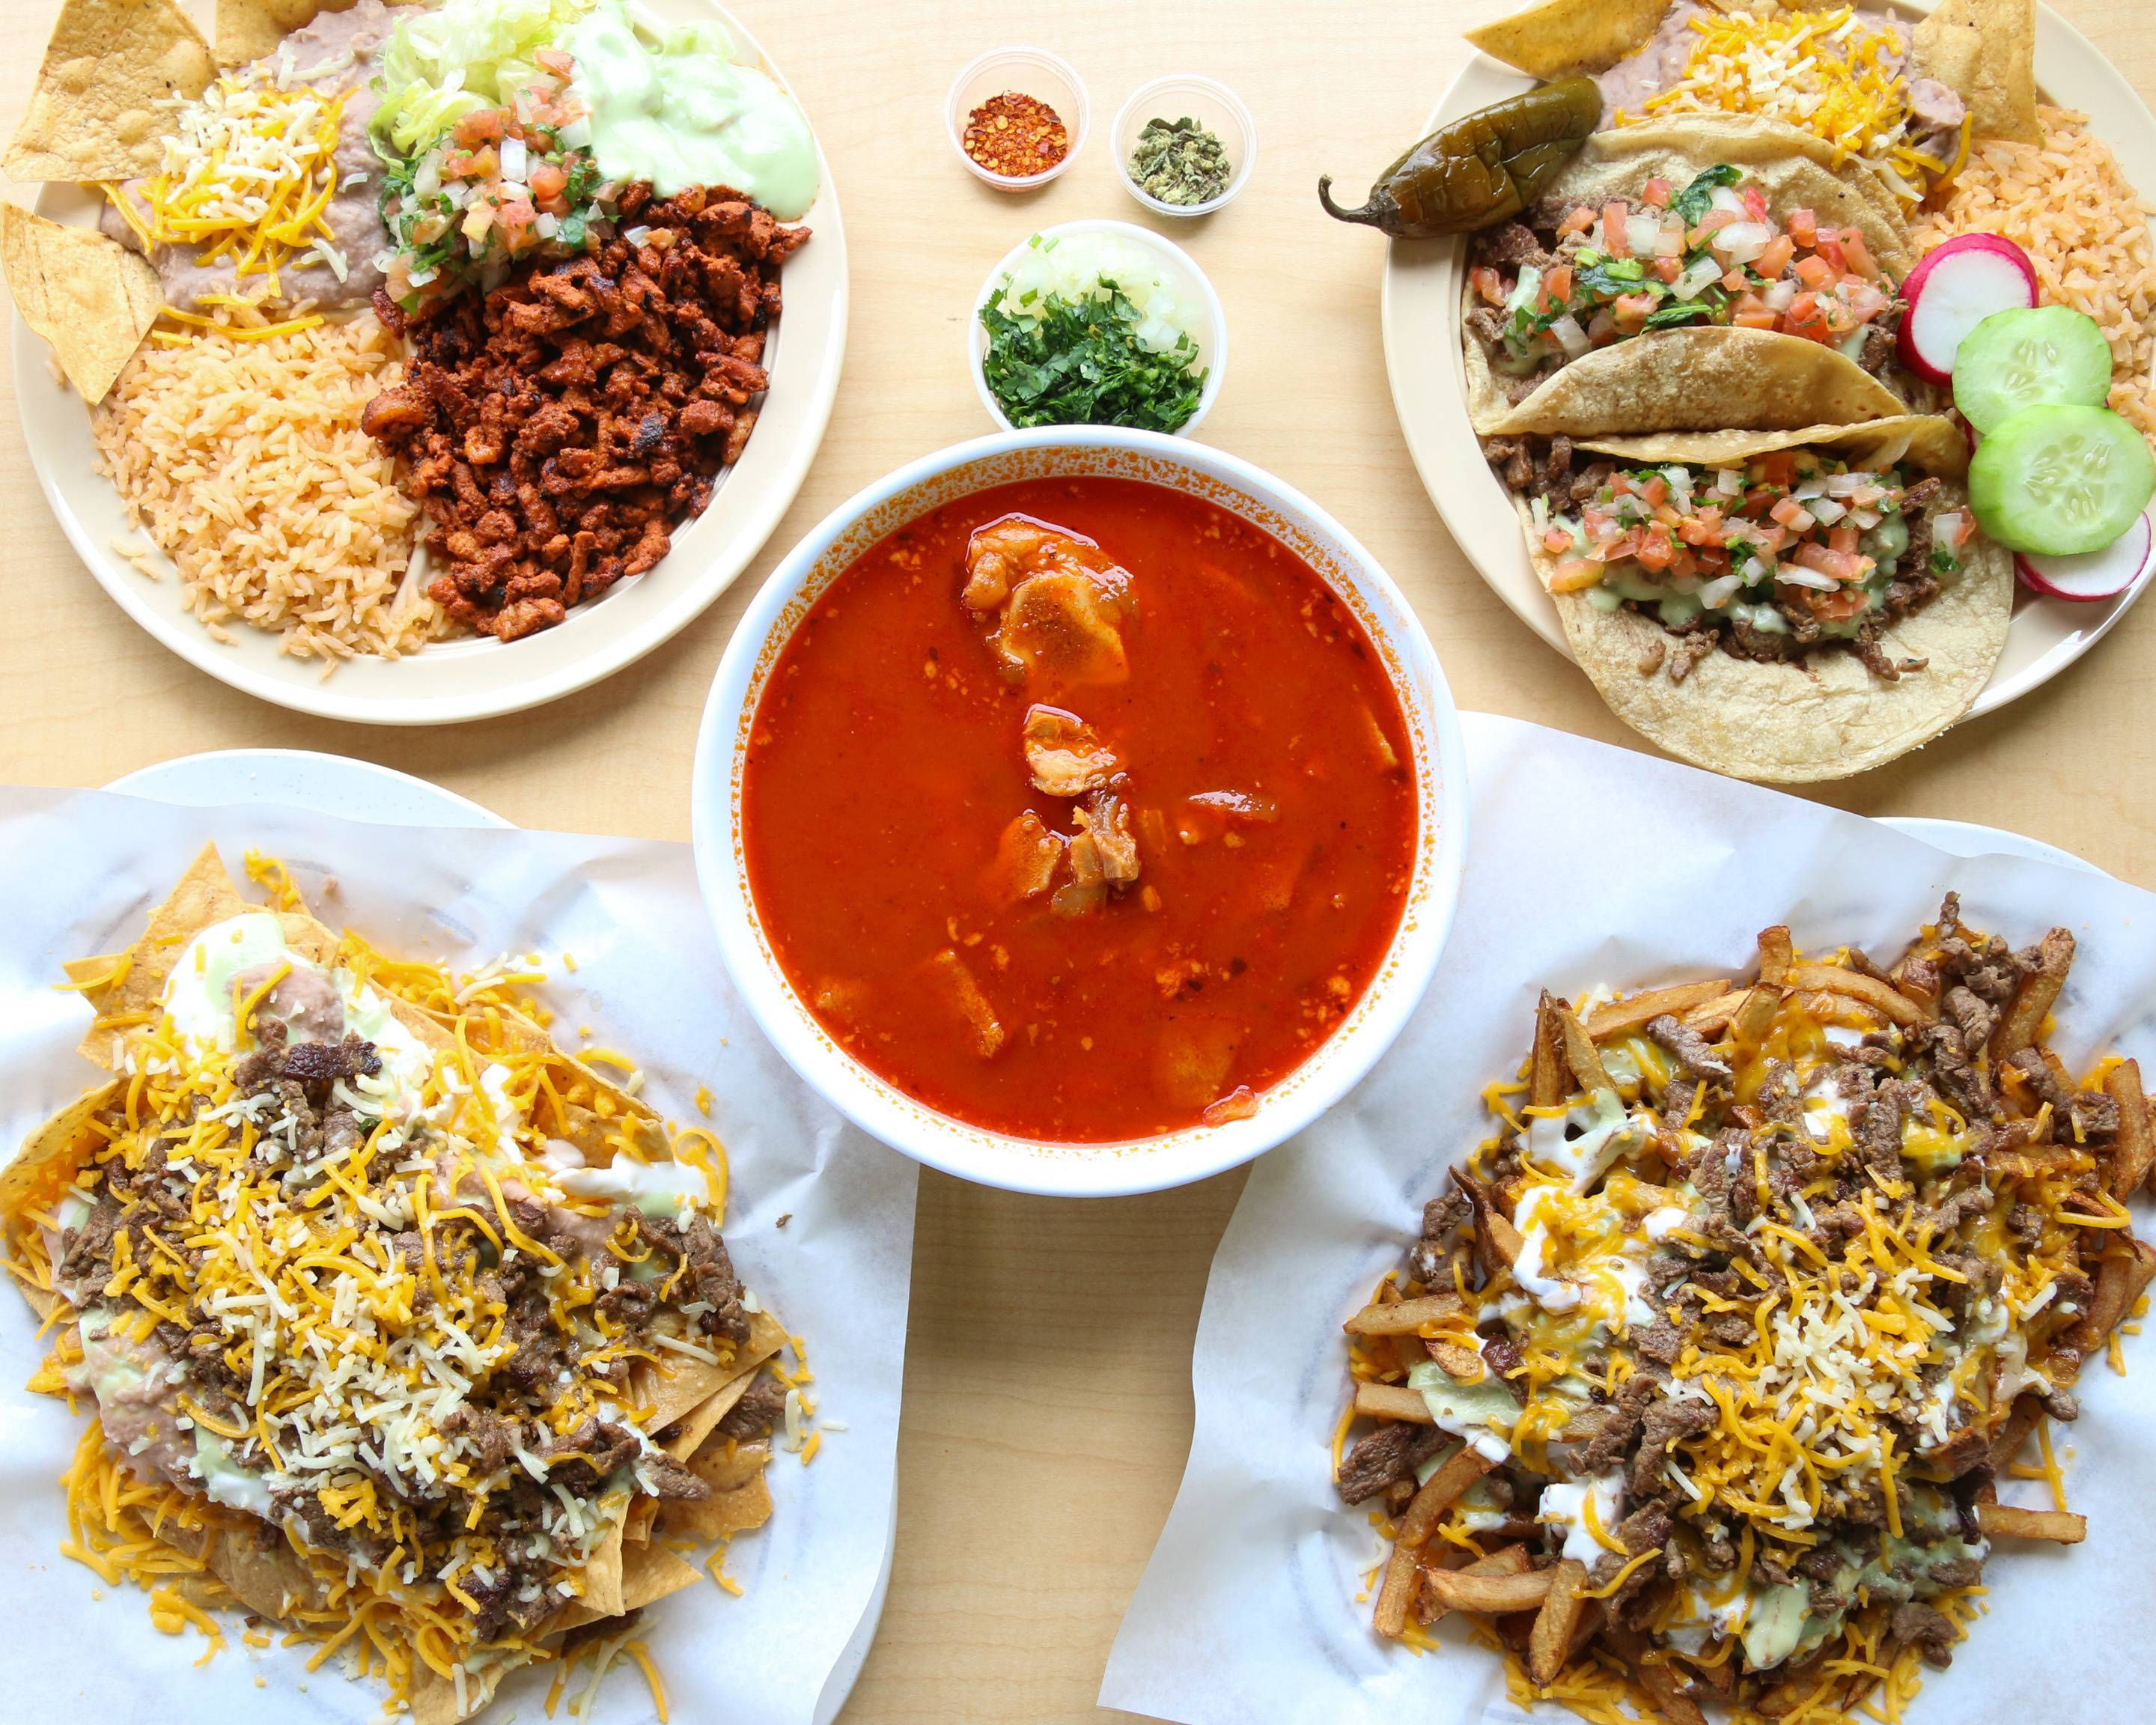 Castaneda S Mexican Food Palm Springs 451 S Paseo